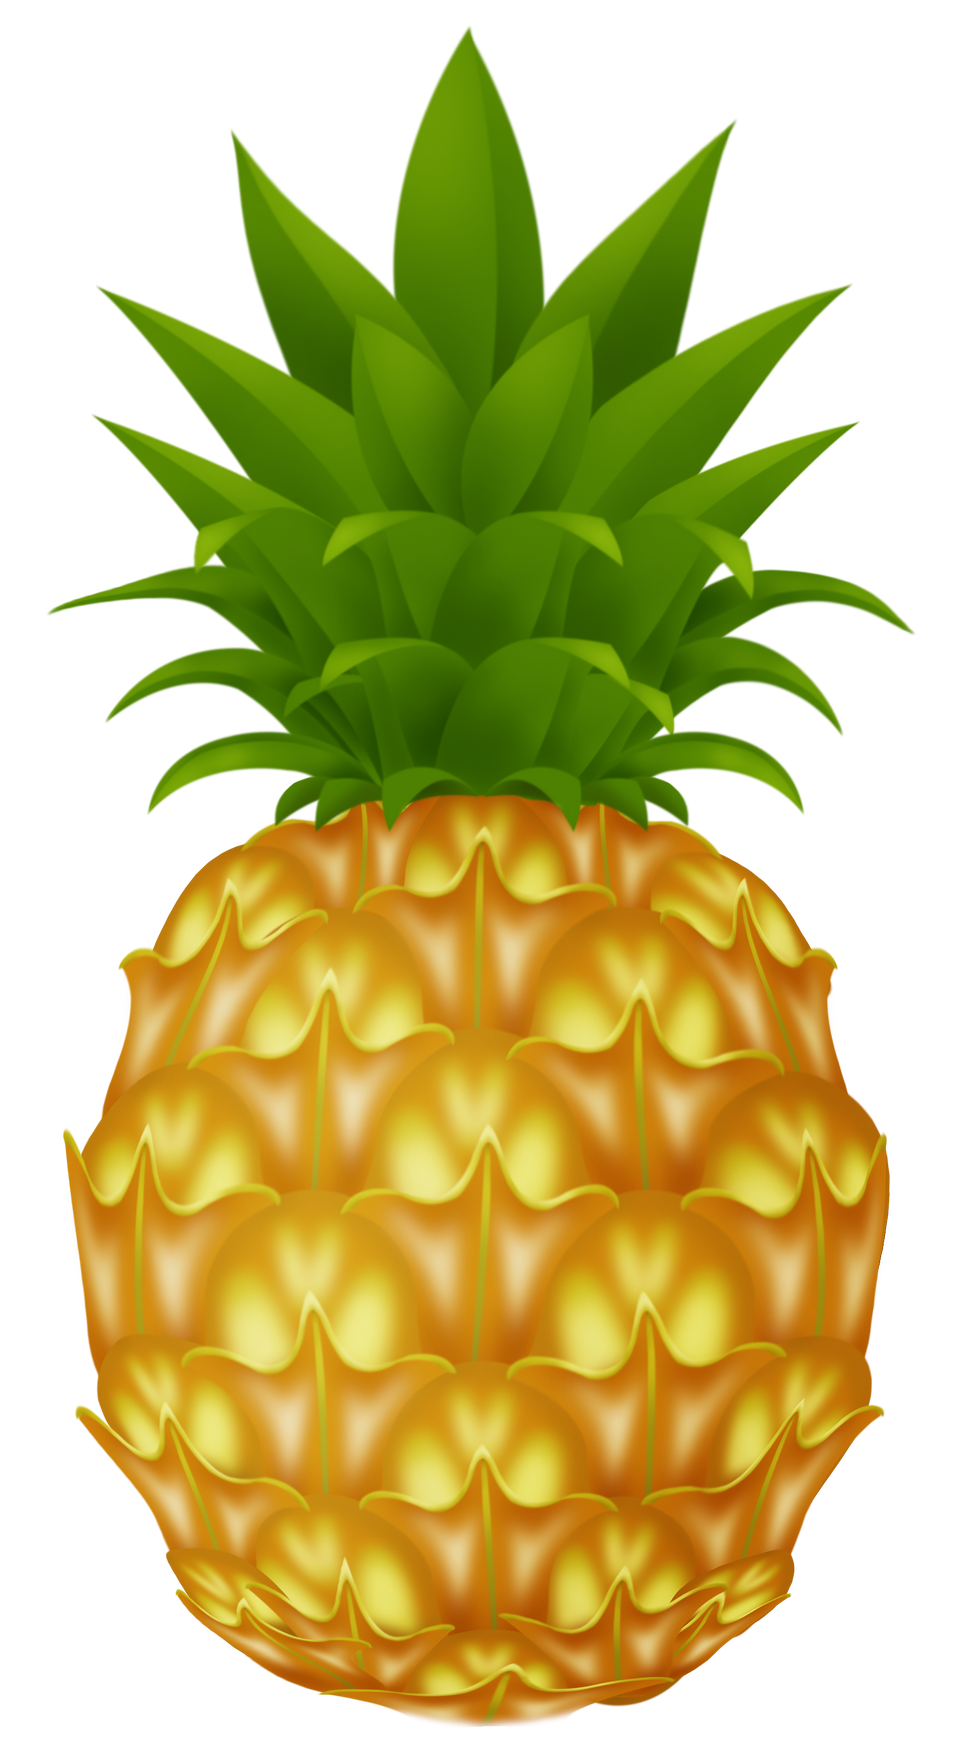 Pineapple clipart high quality. Png image purepng free